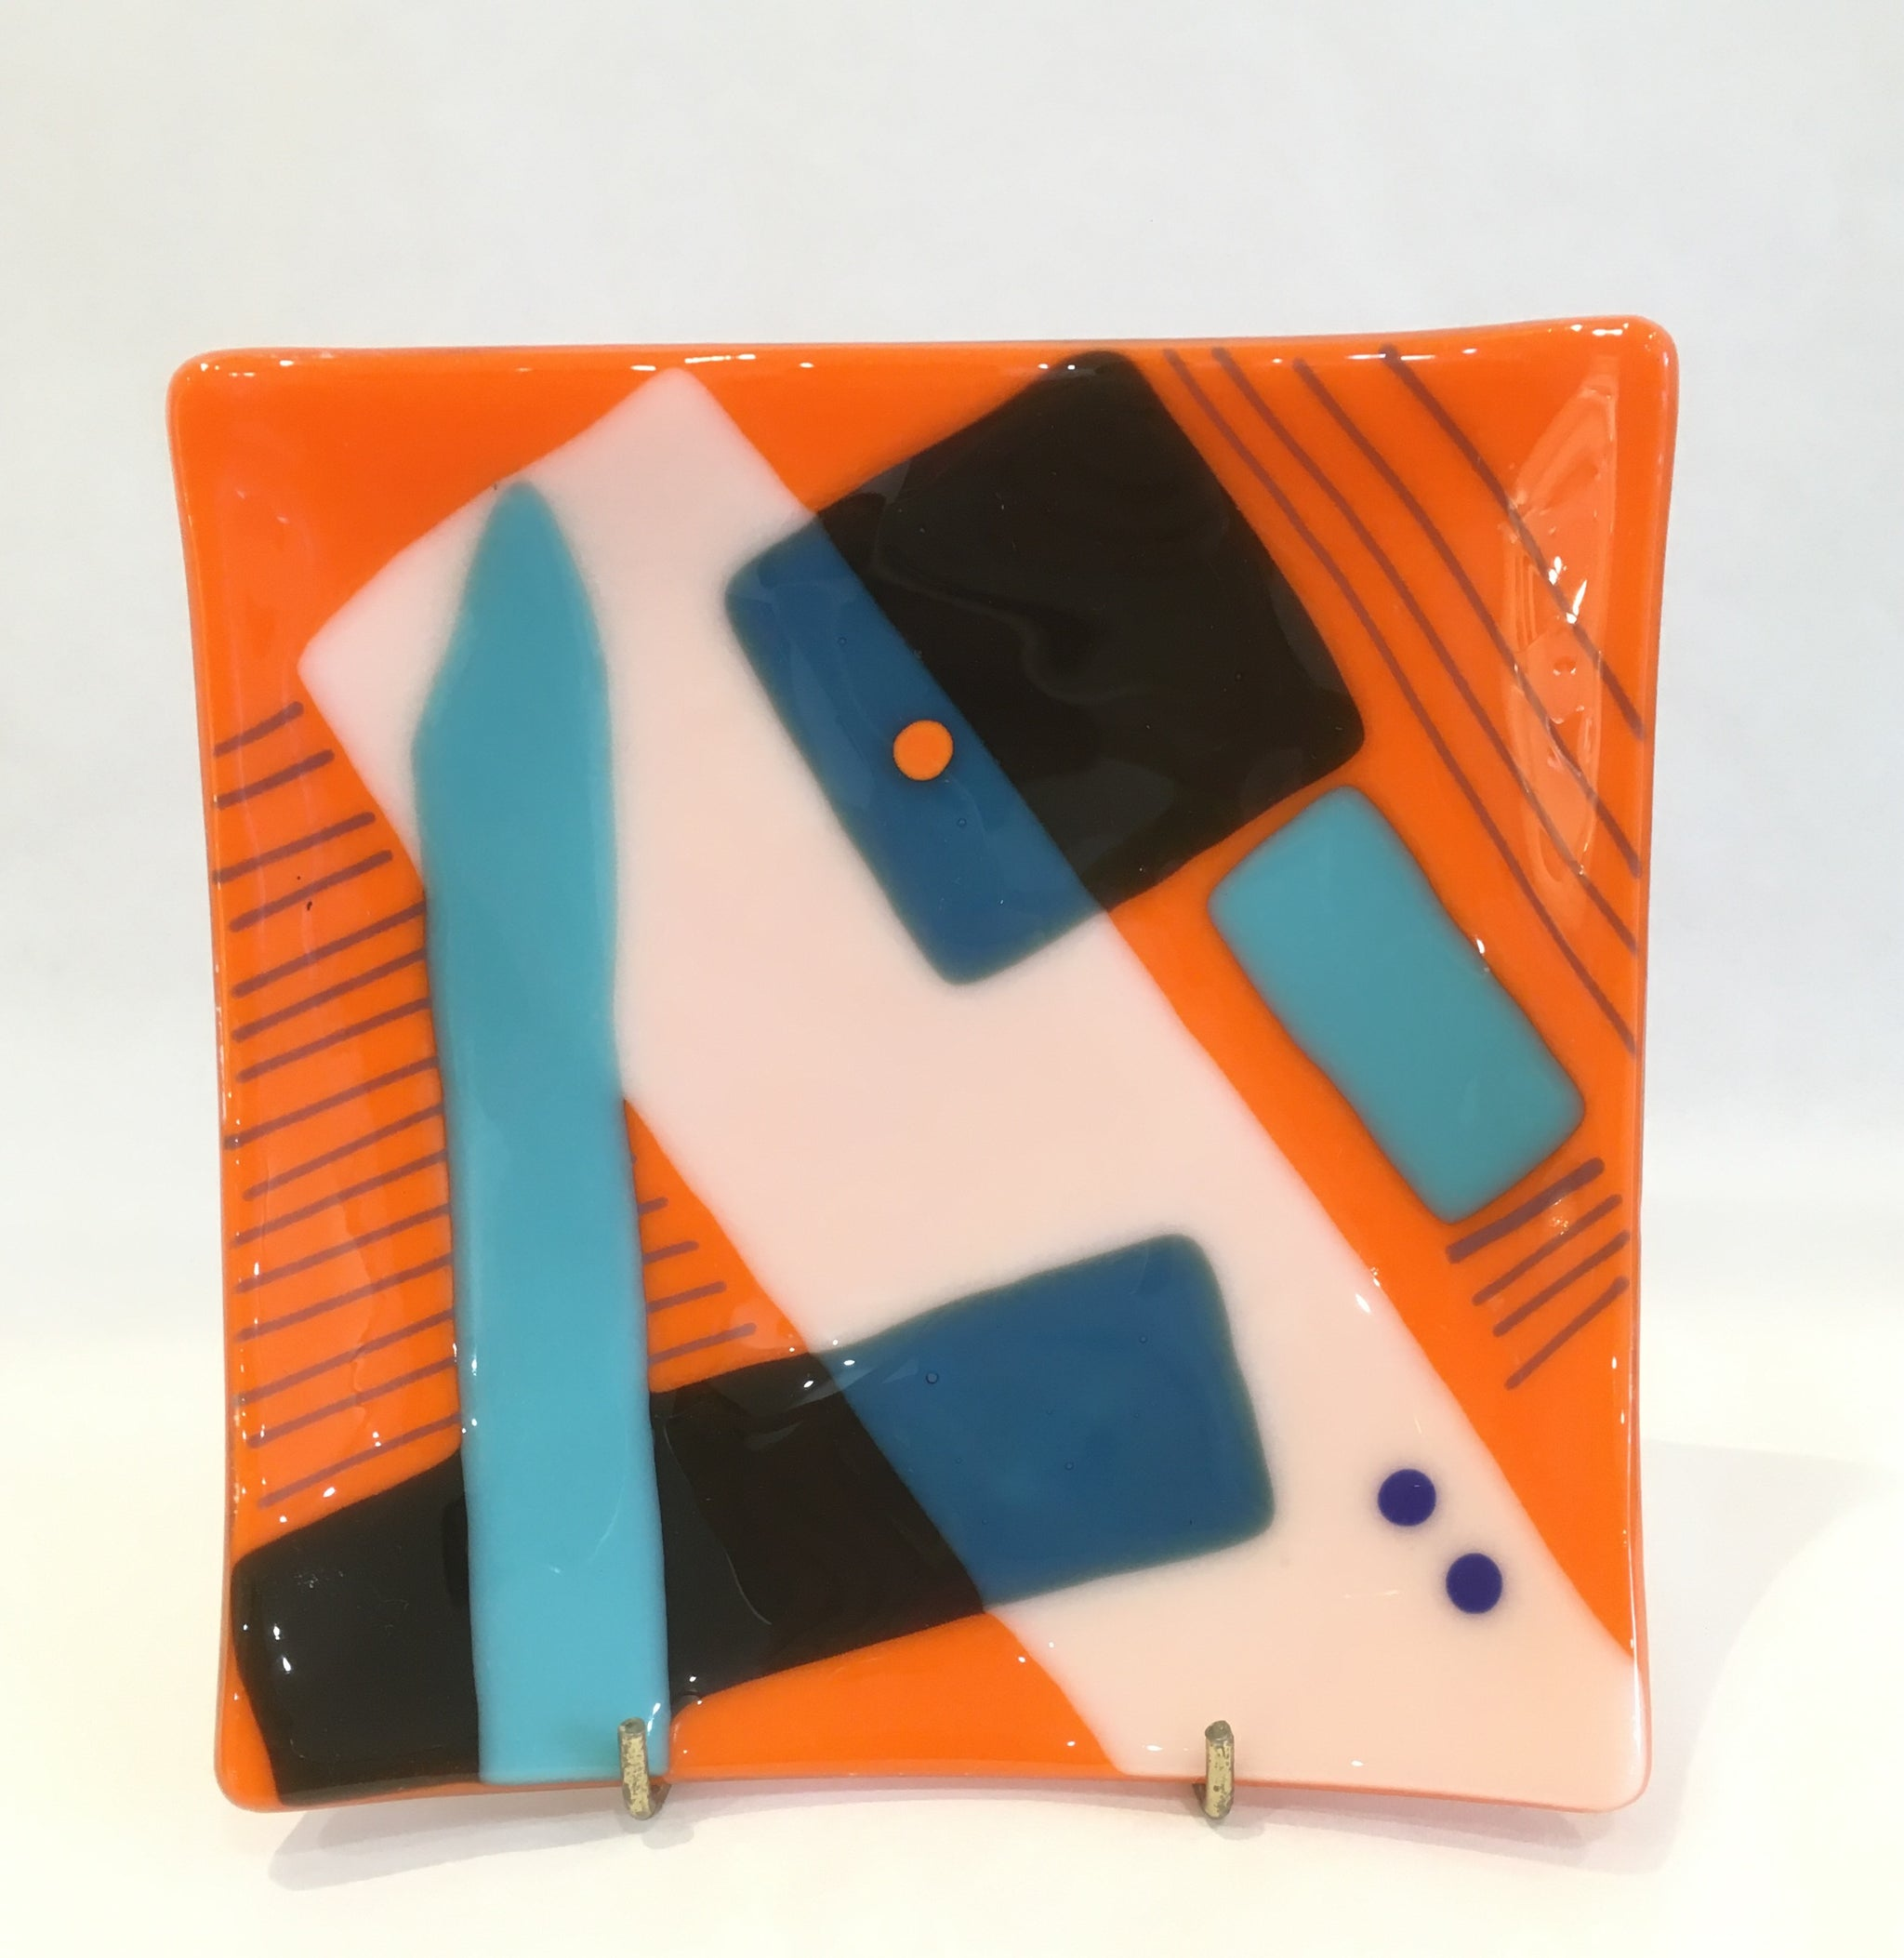 Fused glass by Margot Alexander